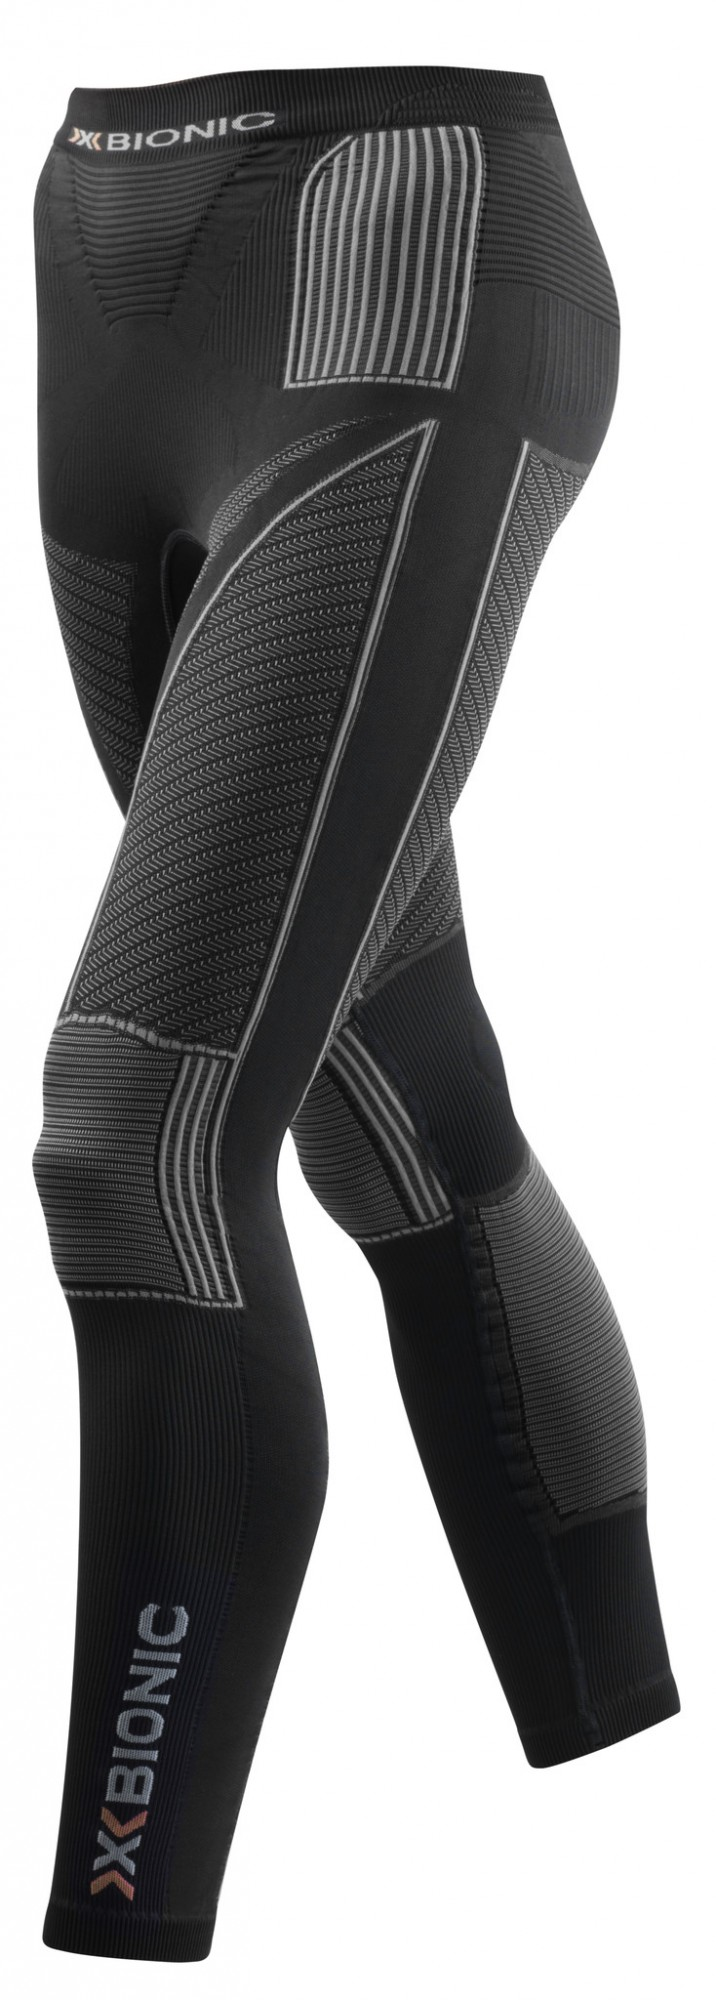 X-Bionic Lady Accumulator Evo UW Pants Long - Damen Funktionsunterhose - I020222 - Gr. S/M